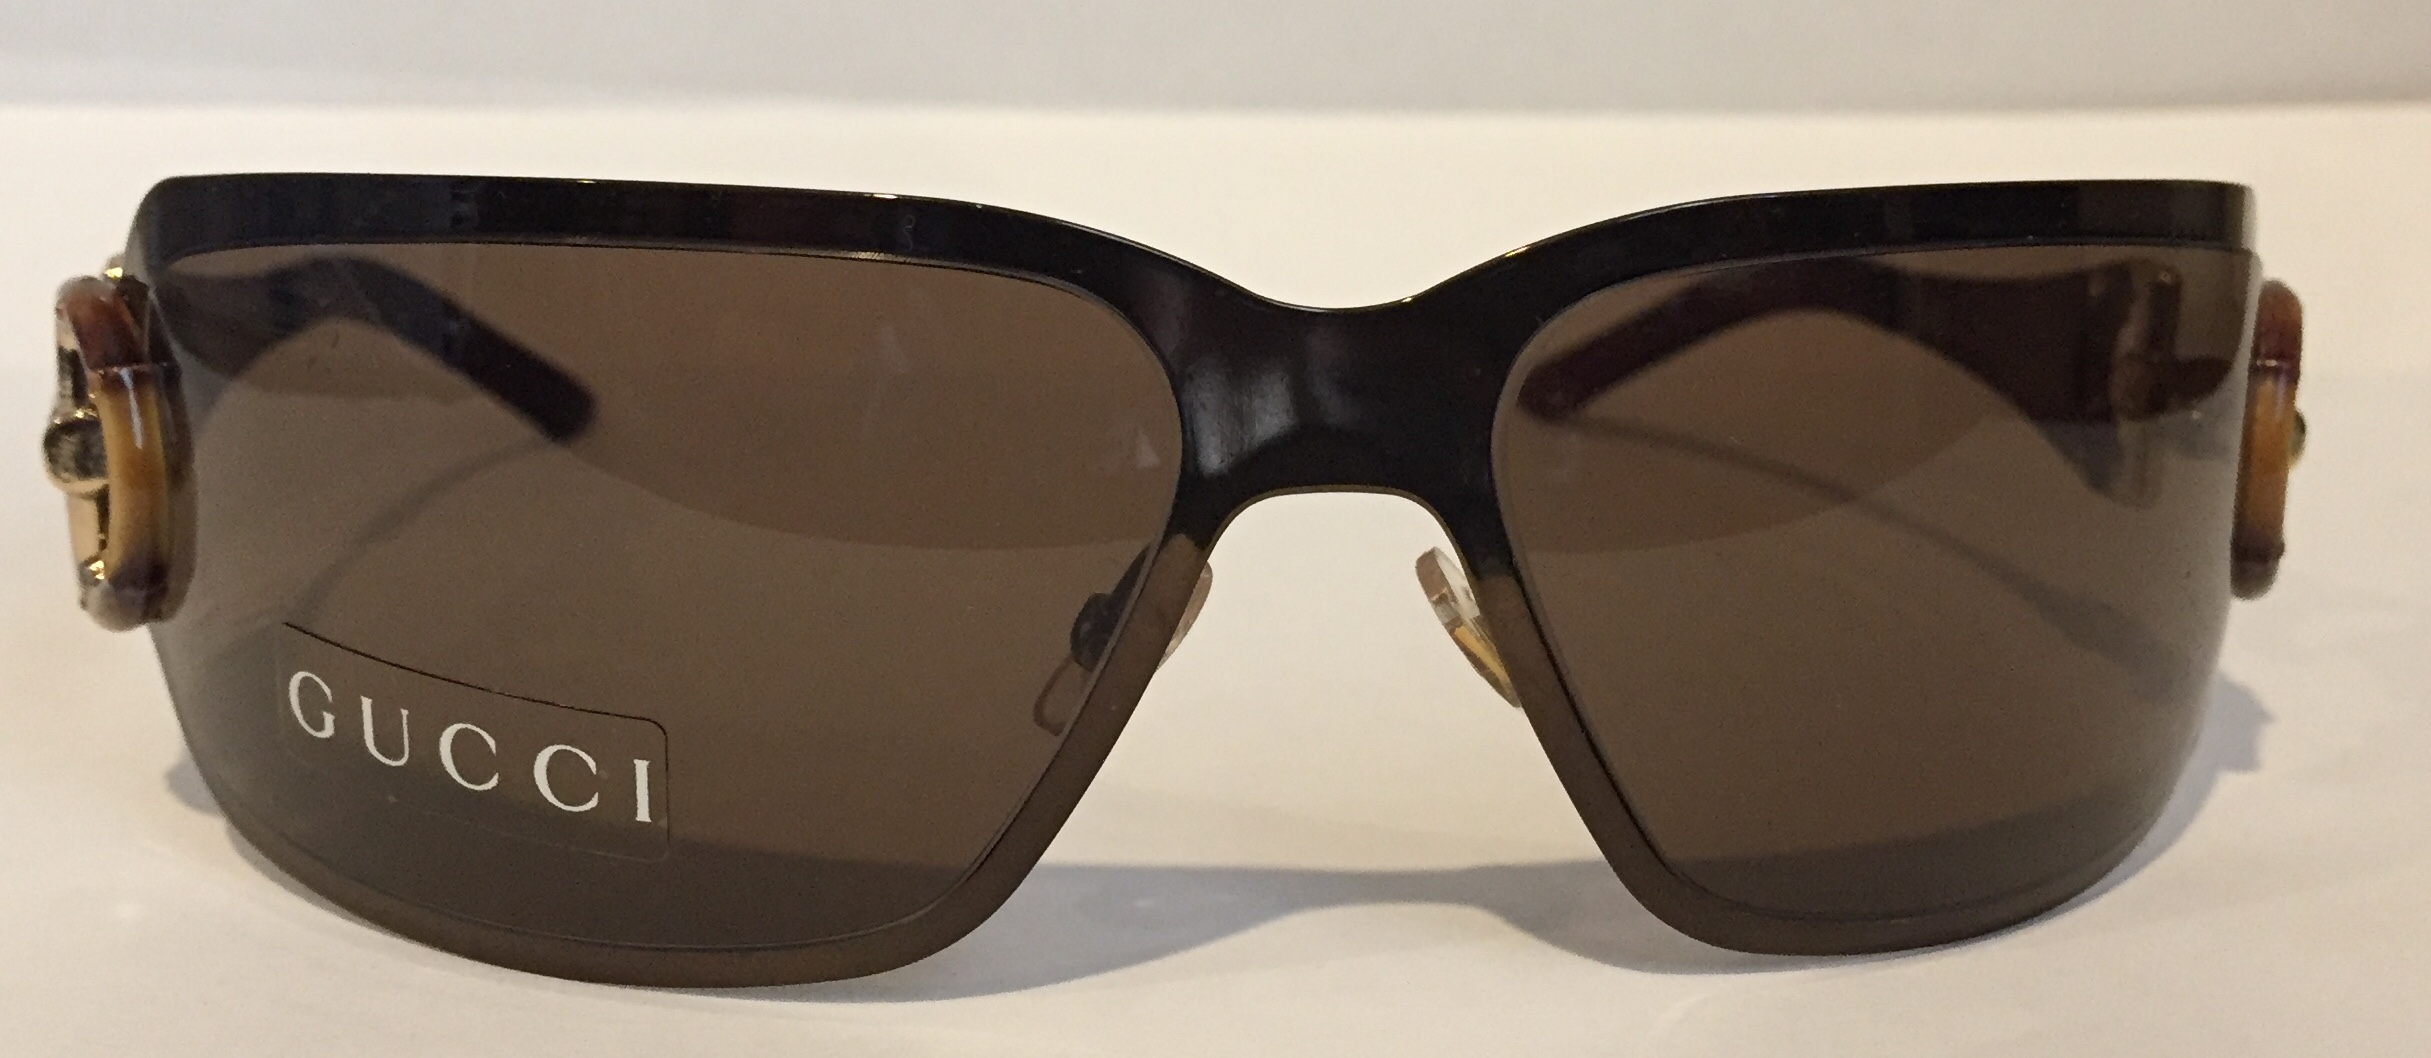 clearance GUCCI 2796  SUNGLASSES